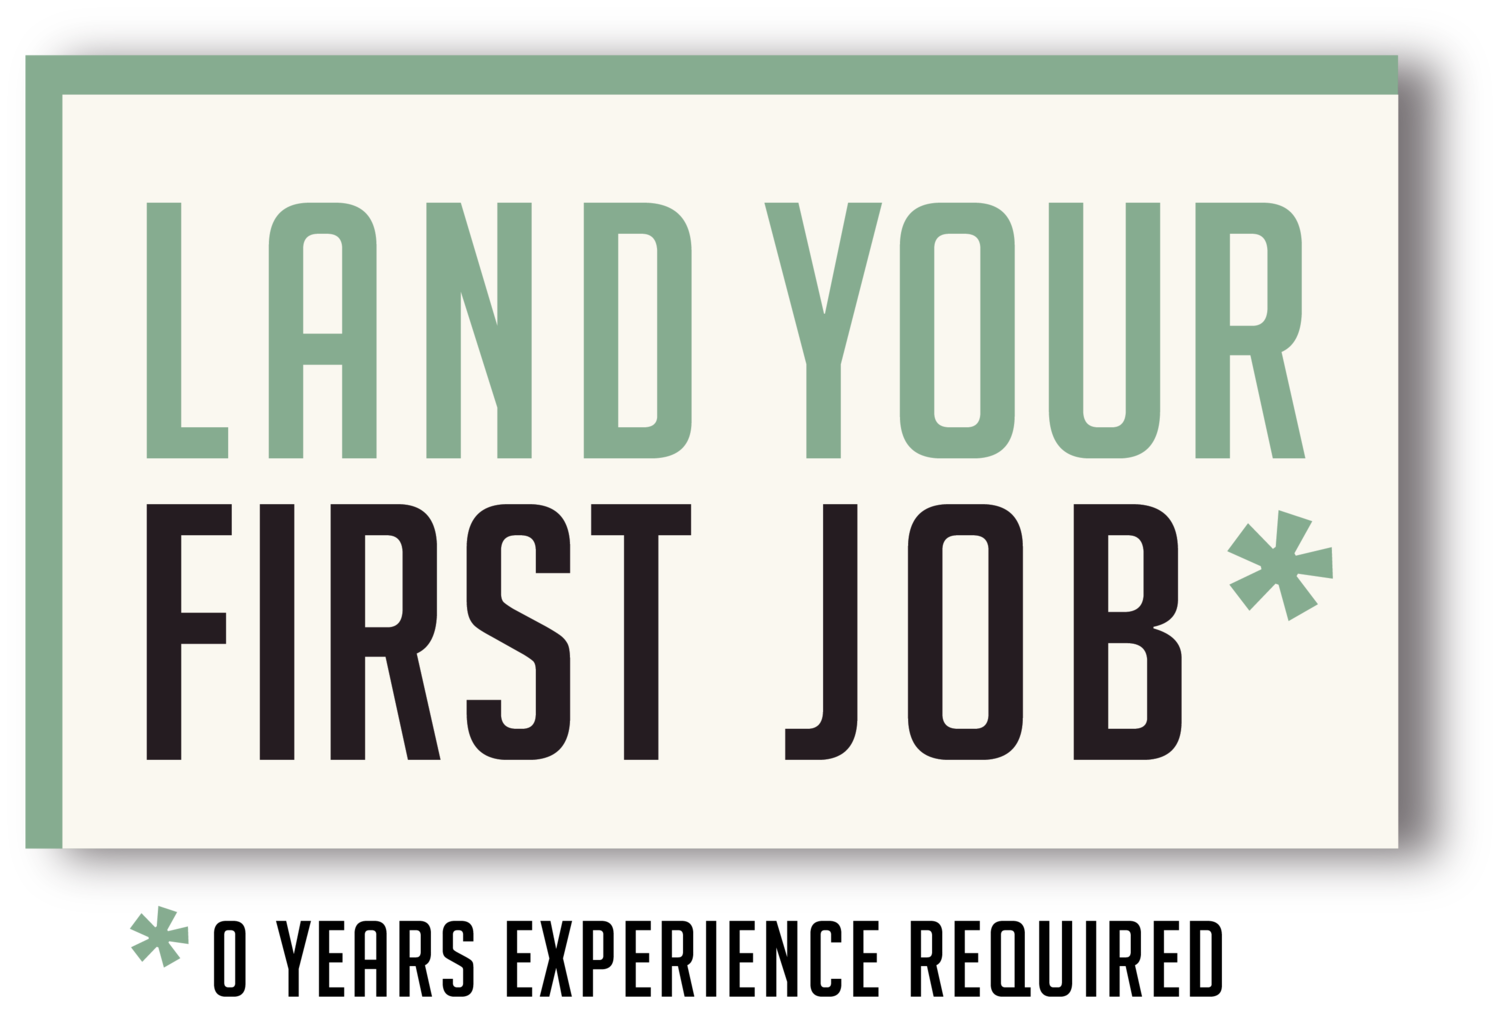 Land Your First Job